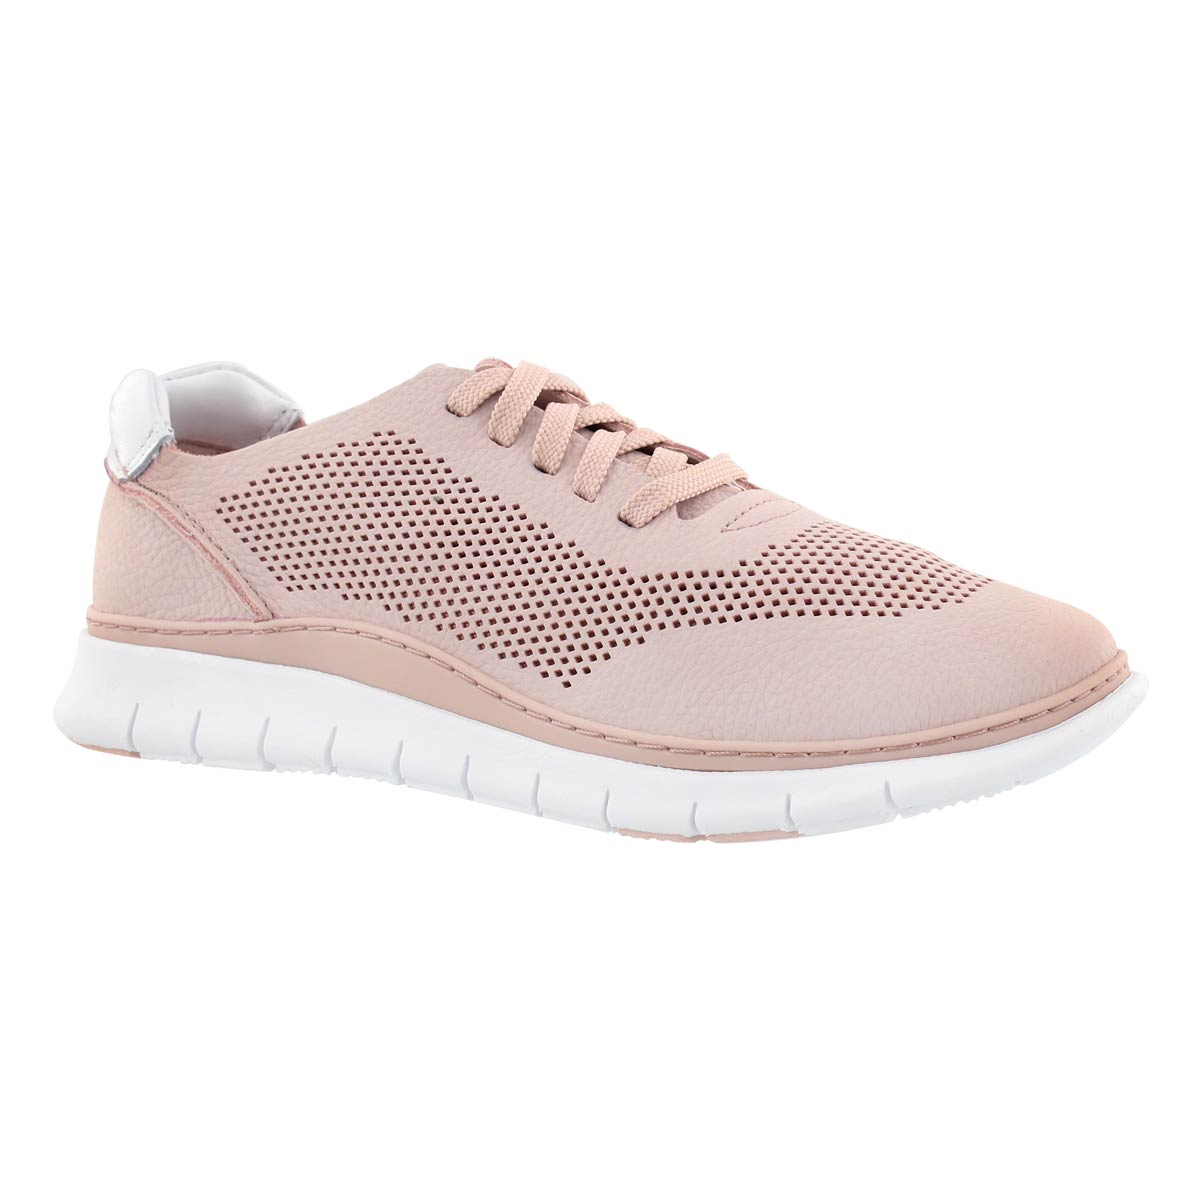 Women's JOEY dusty pink lace up sneakers